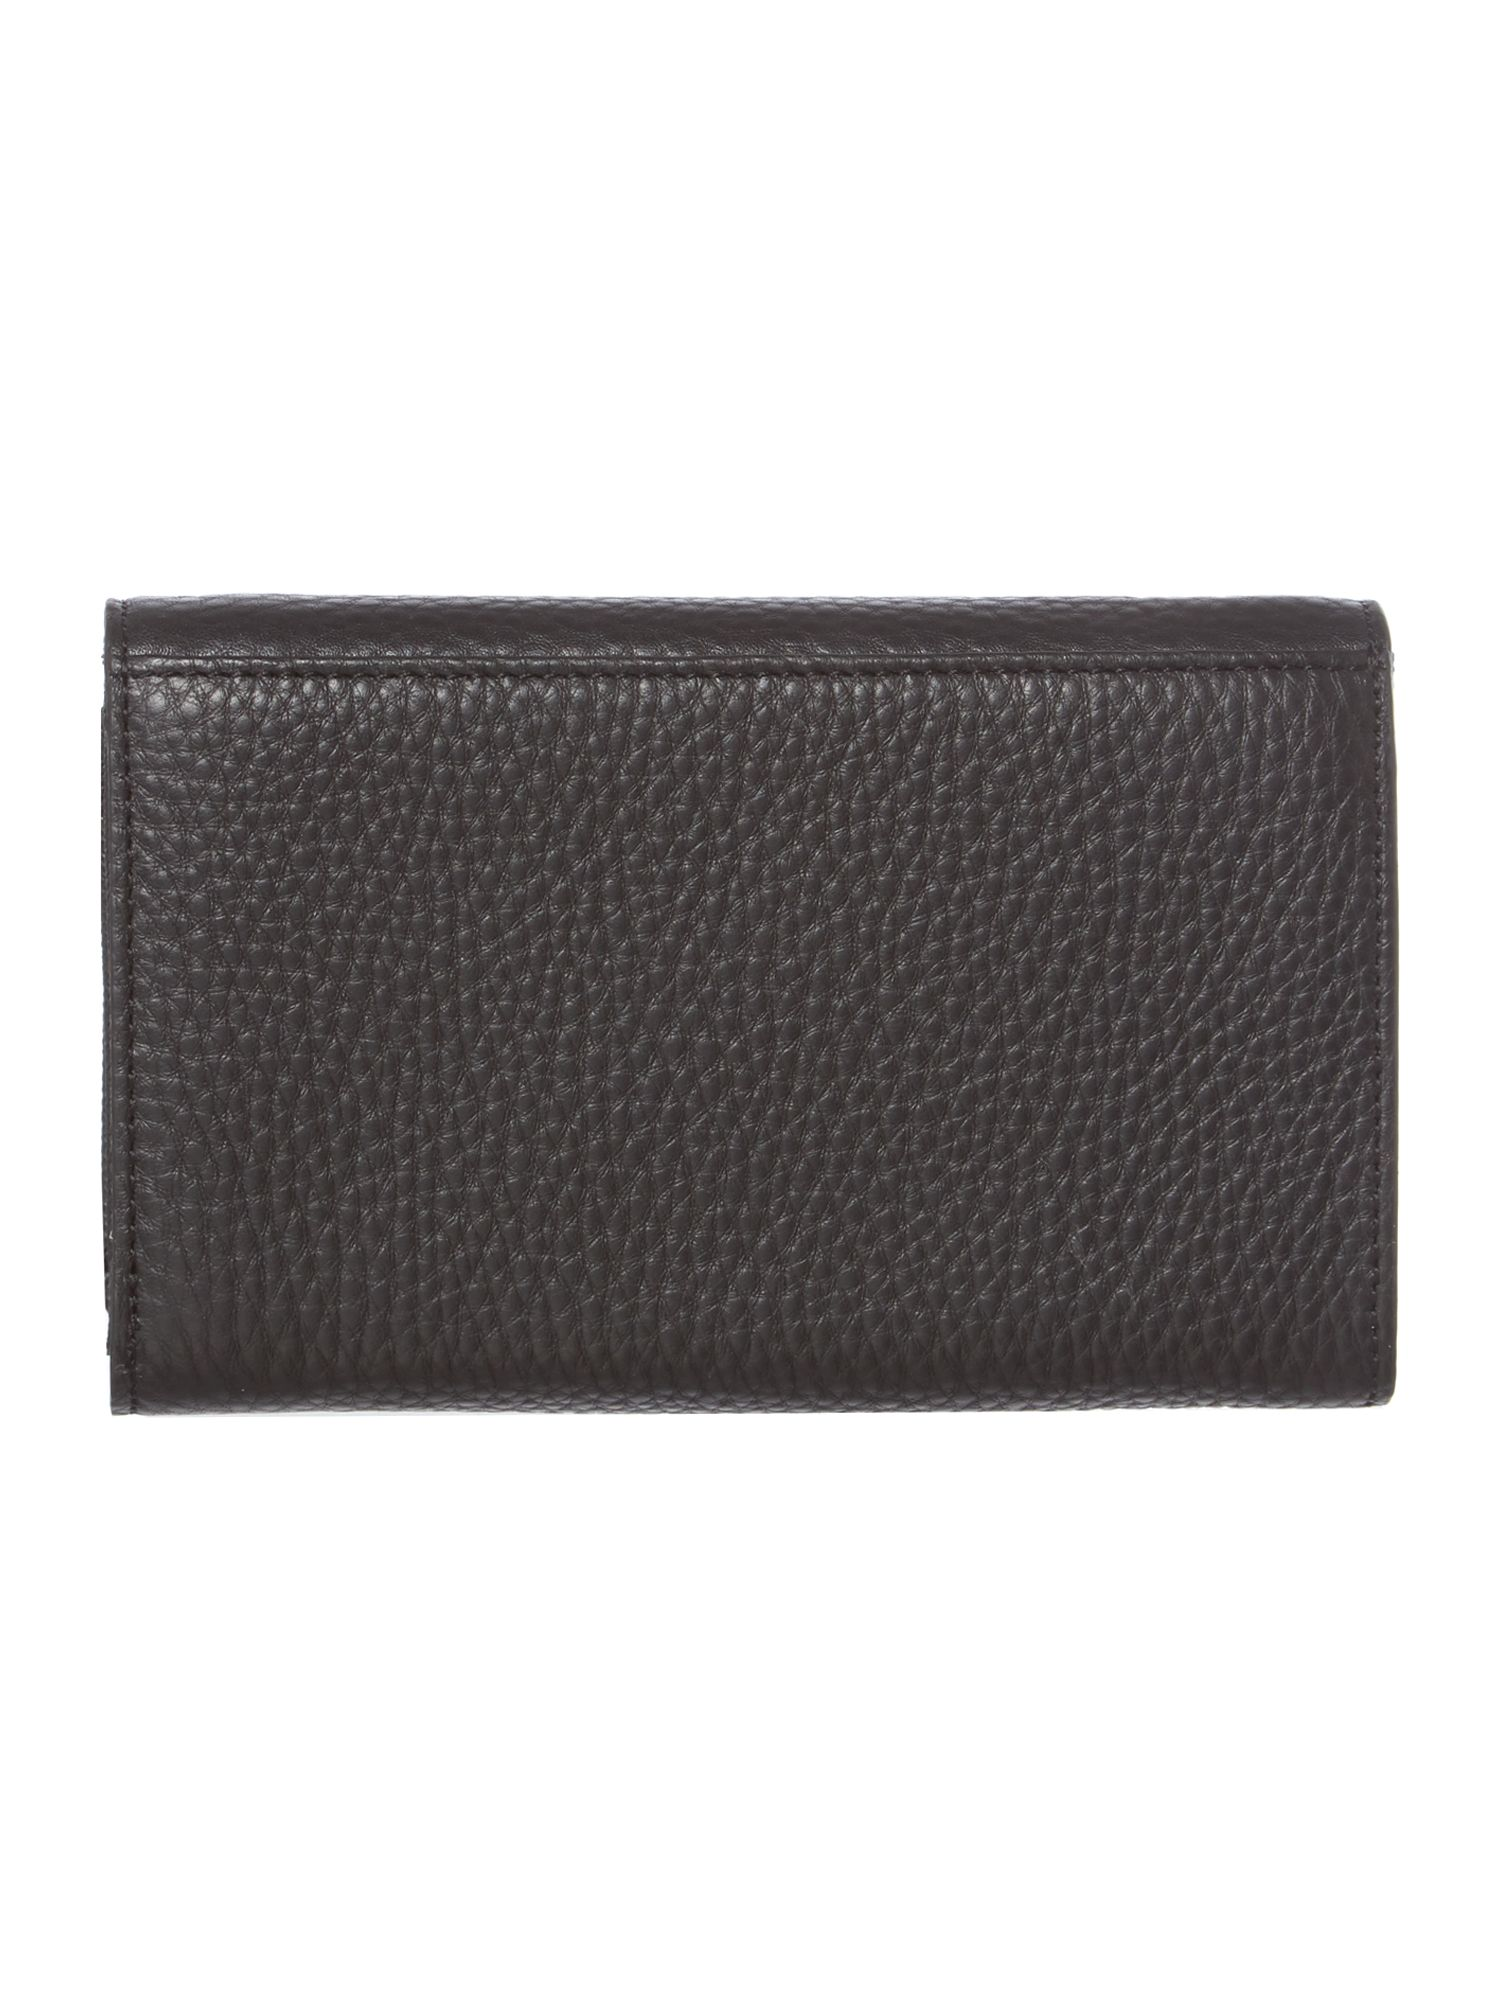 Tribeca black medium flap over purse